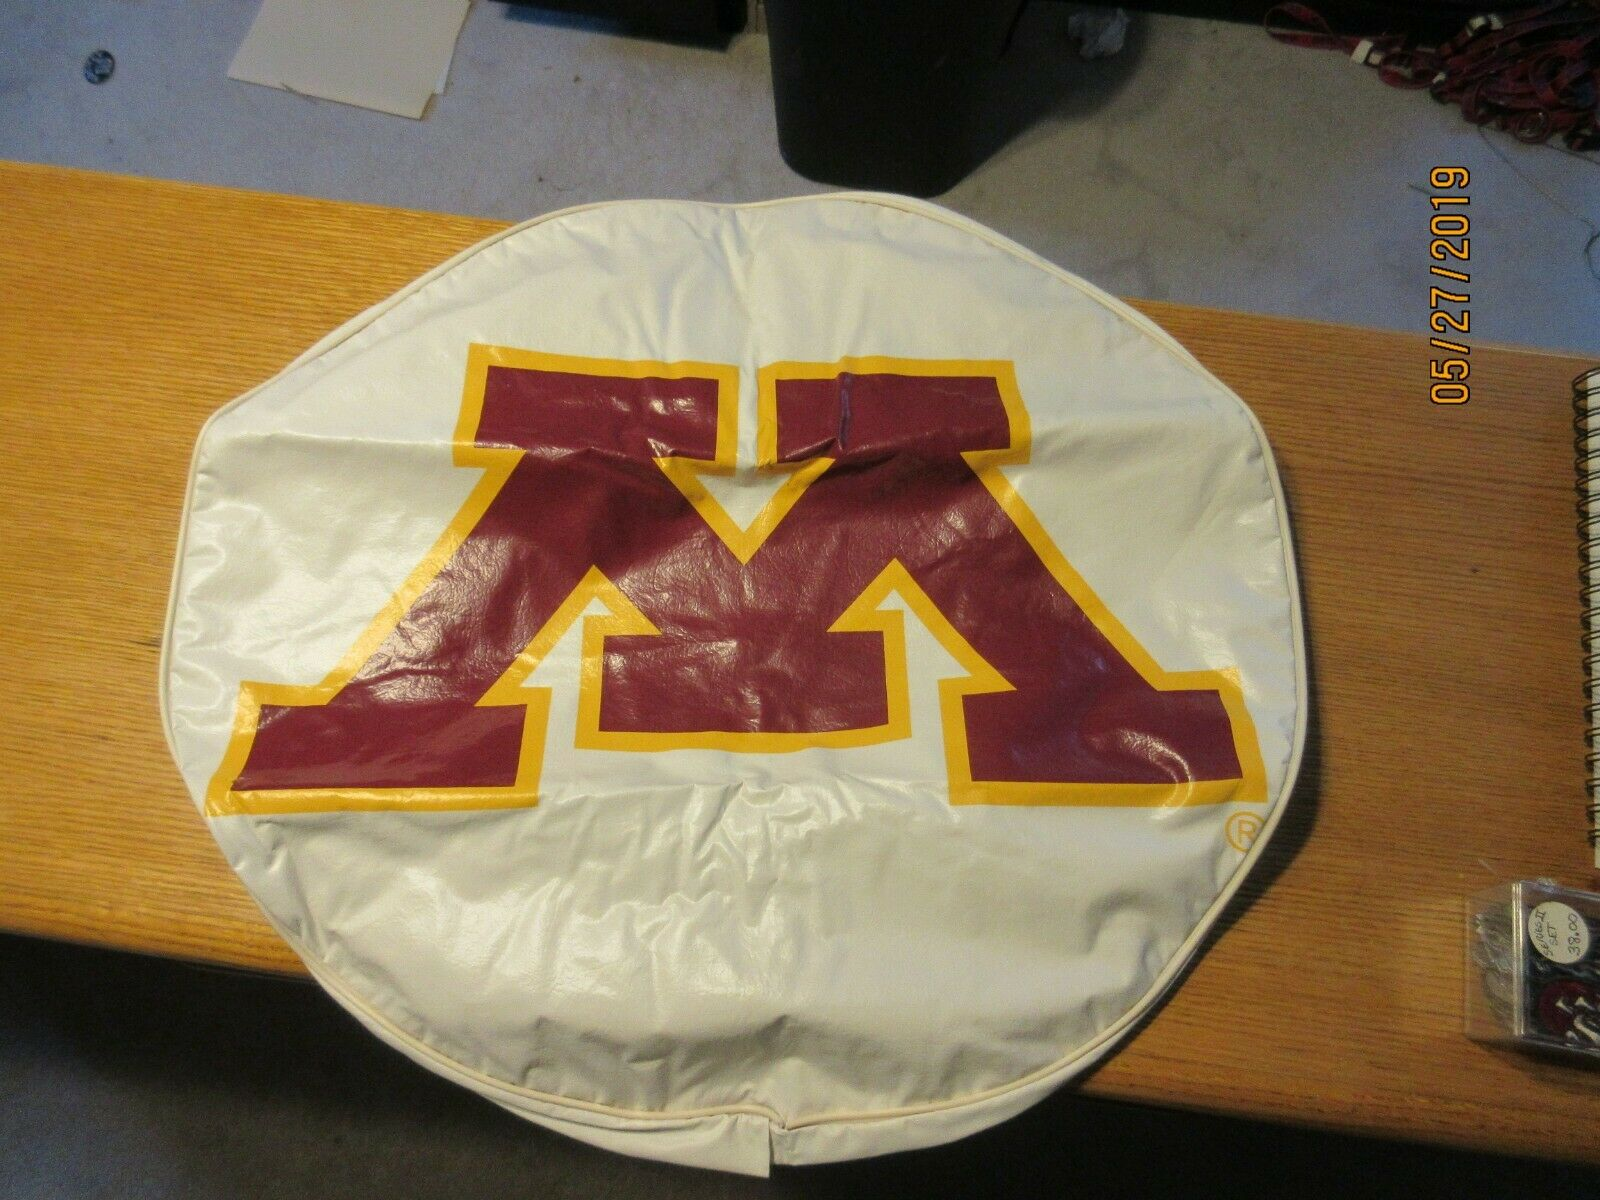 Minnesota Gophers Tire Cover by HBS Size 0 College